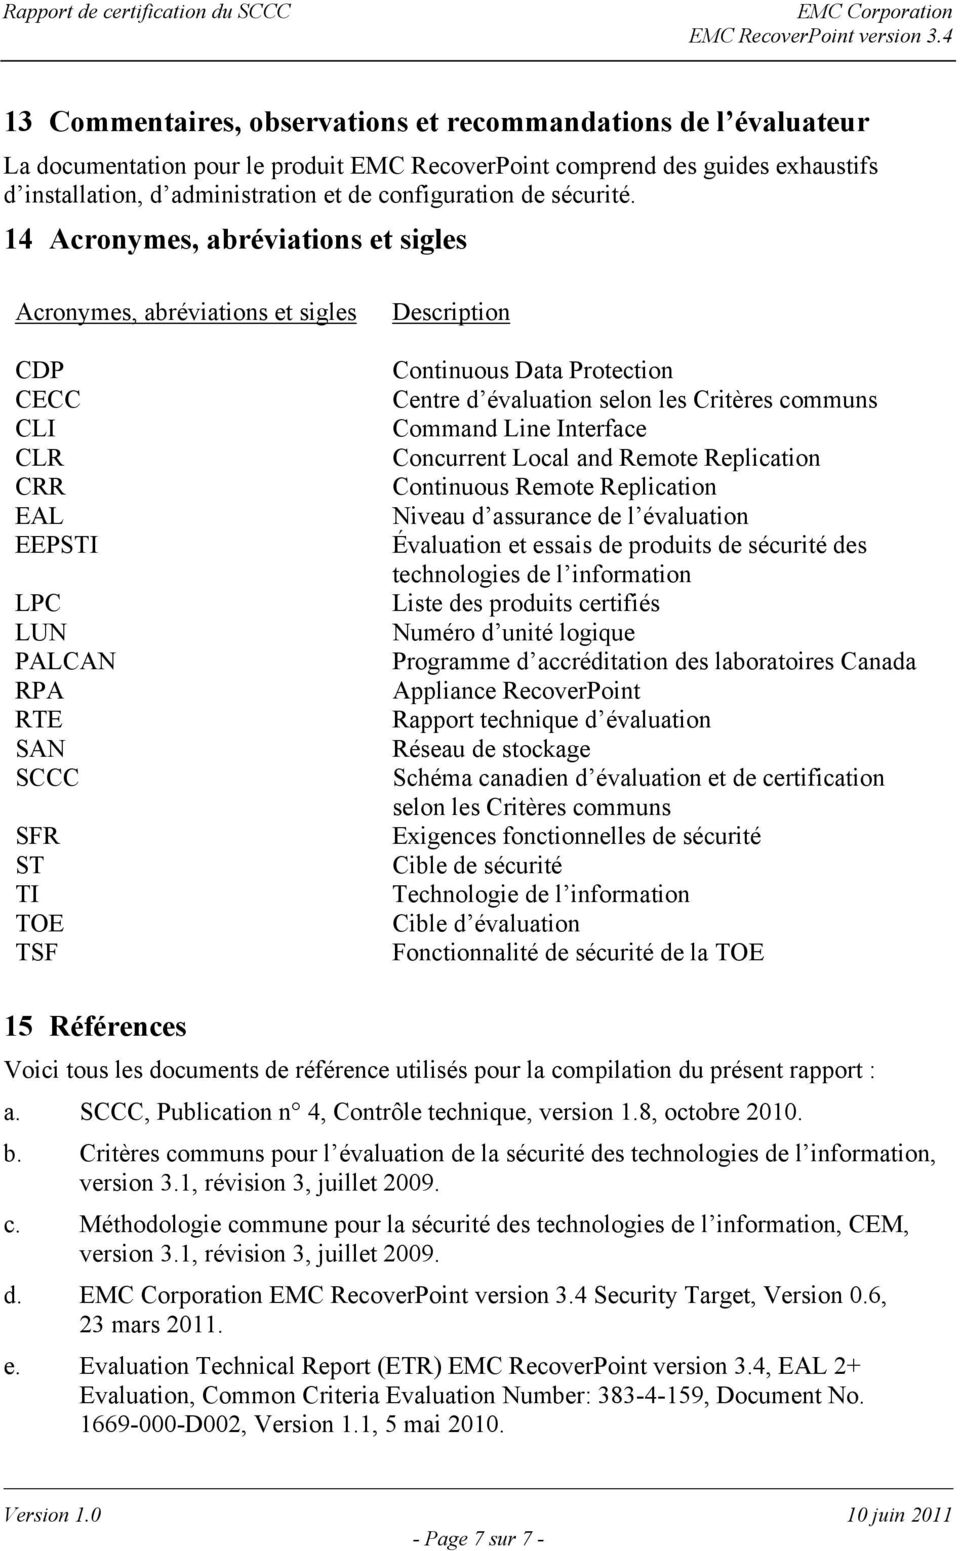 14 Acronymes, abréviations et sigles Acronymes, abréviations et sigles CDP CECC CLI CLR CRR EAL EEPSTI LPC LUN PALCAN RPA RTE SAN SCCC SFR ST TI TOE TSF Description Continuous Data Protection Centre